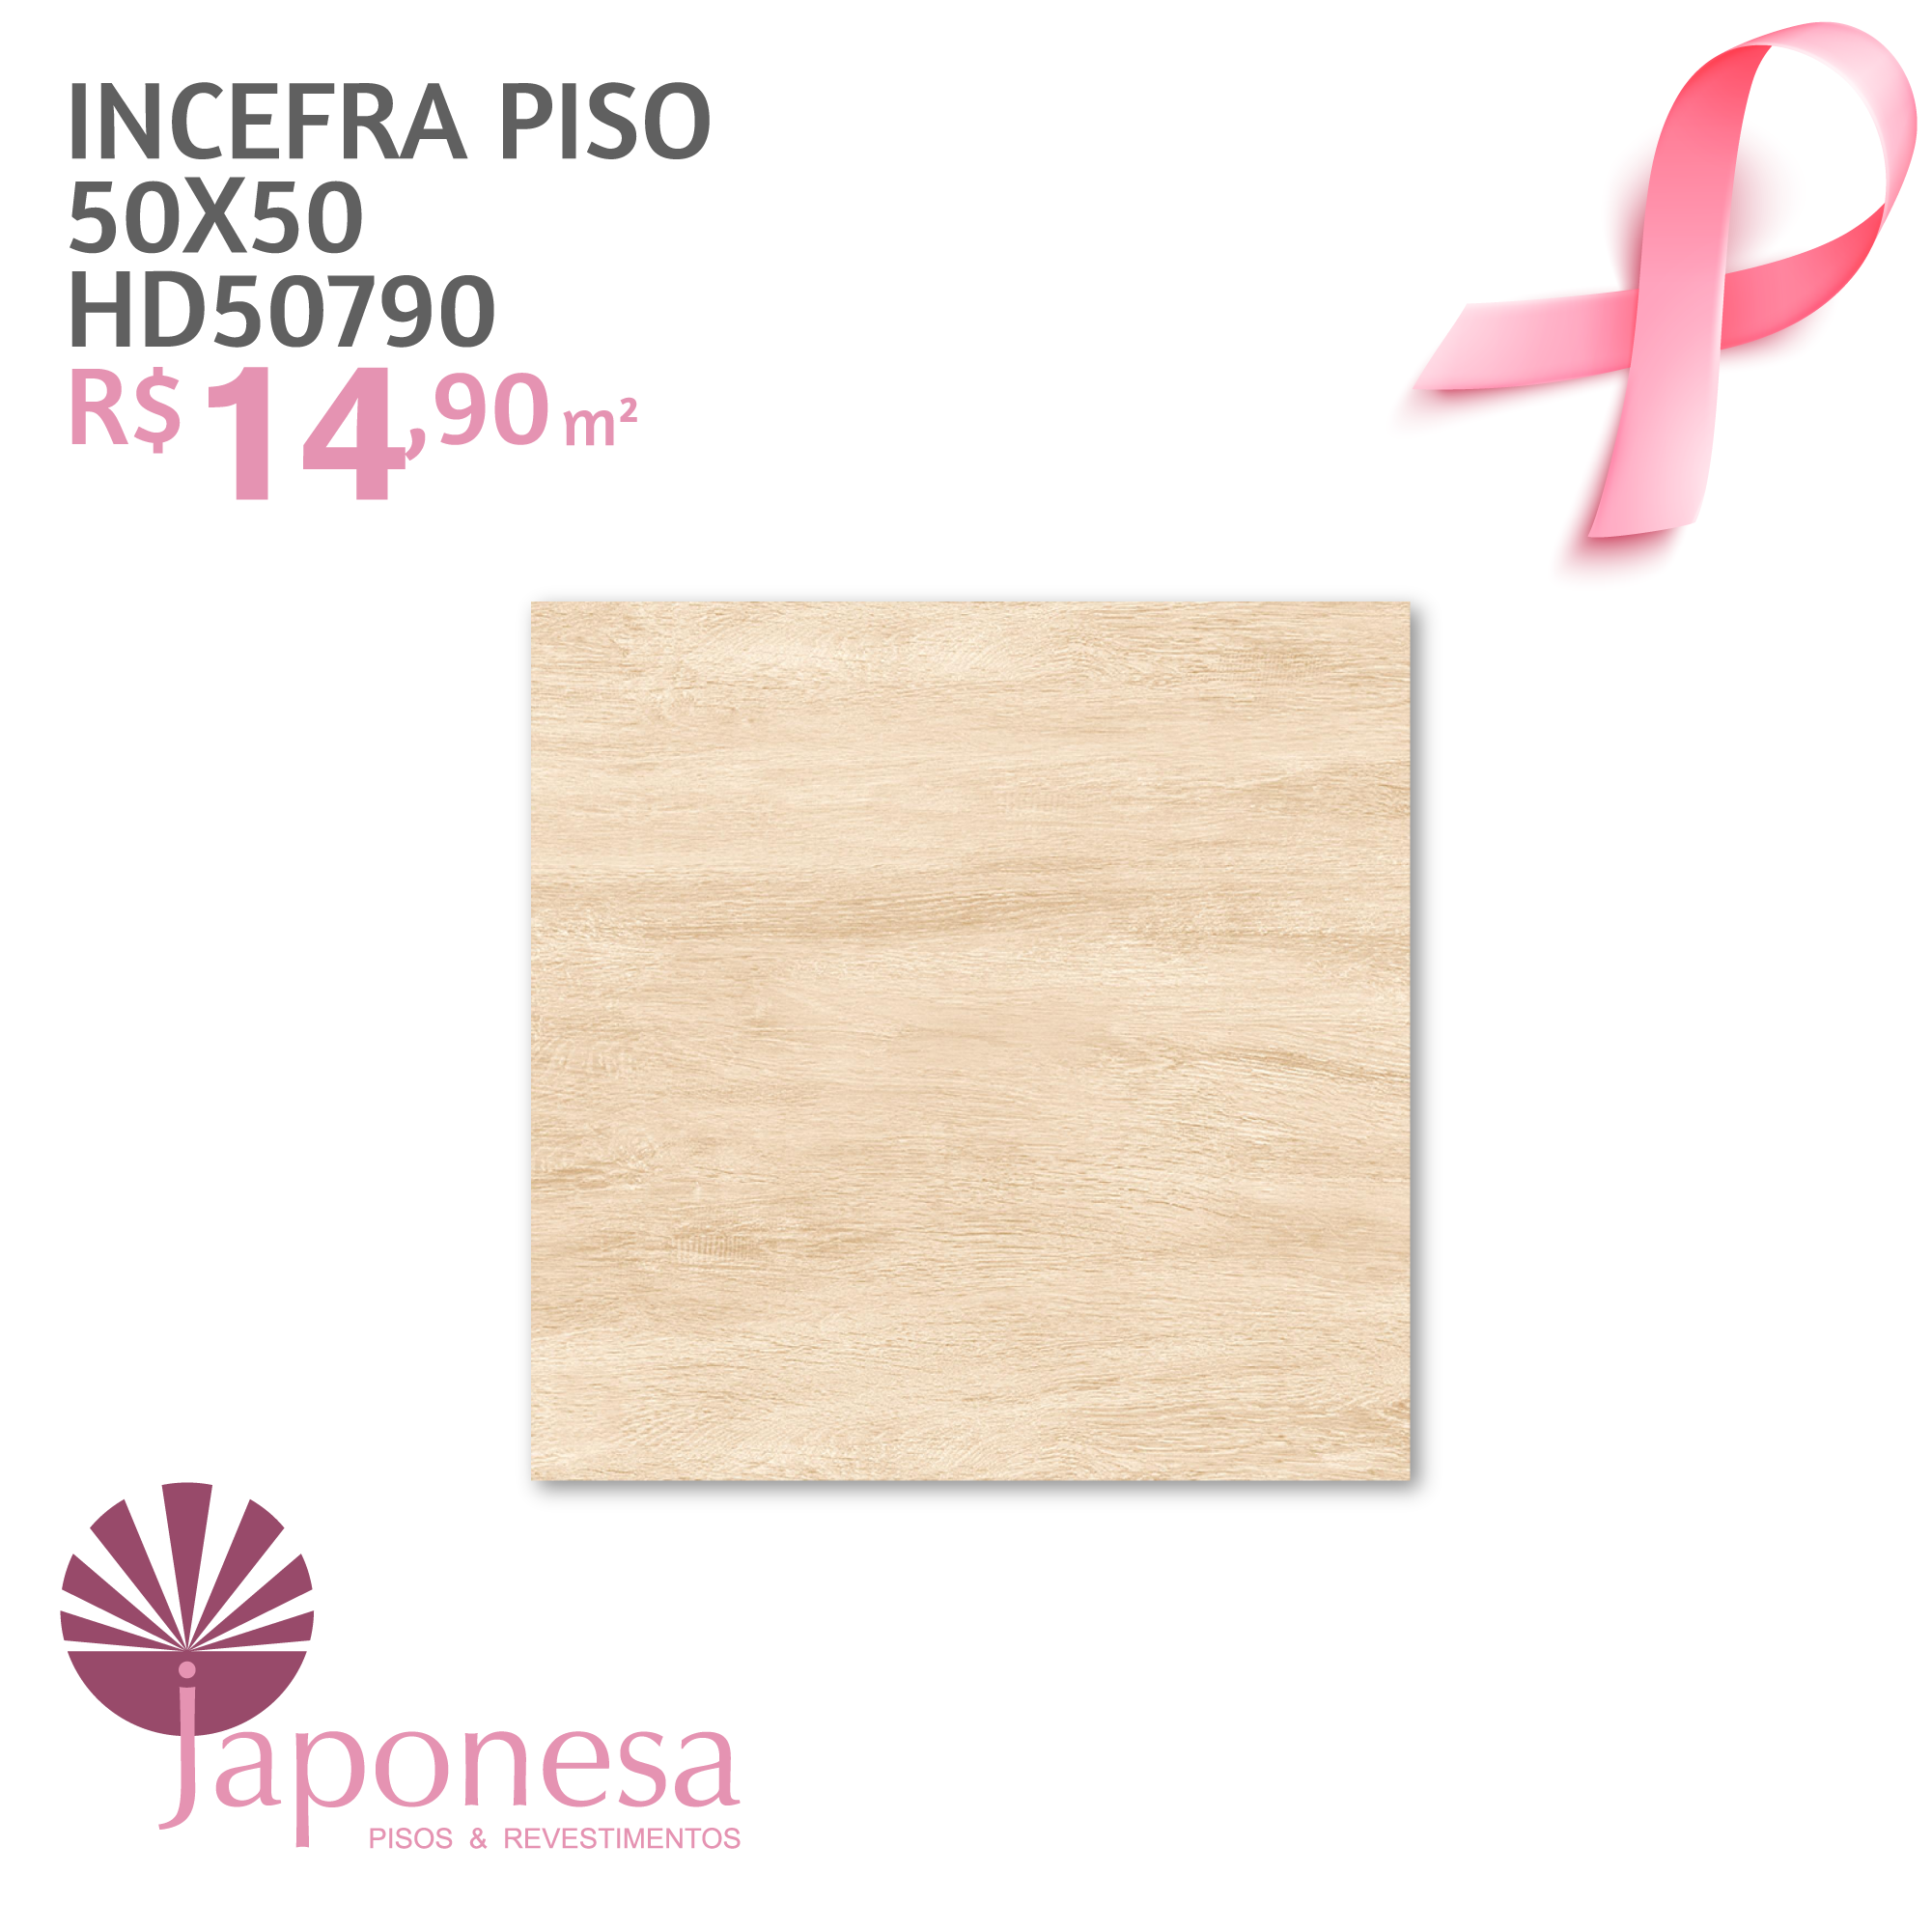 Incefra Piso 50×50 HD50790